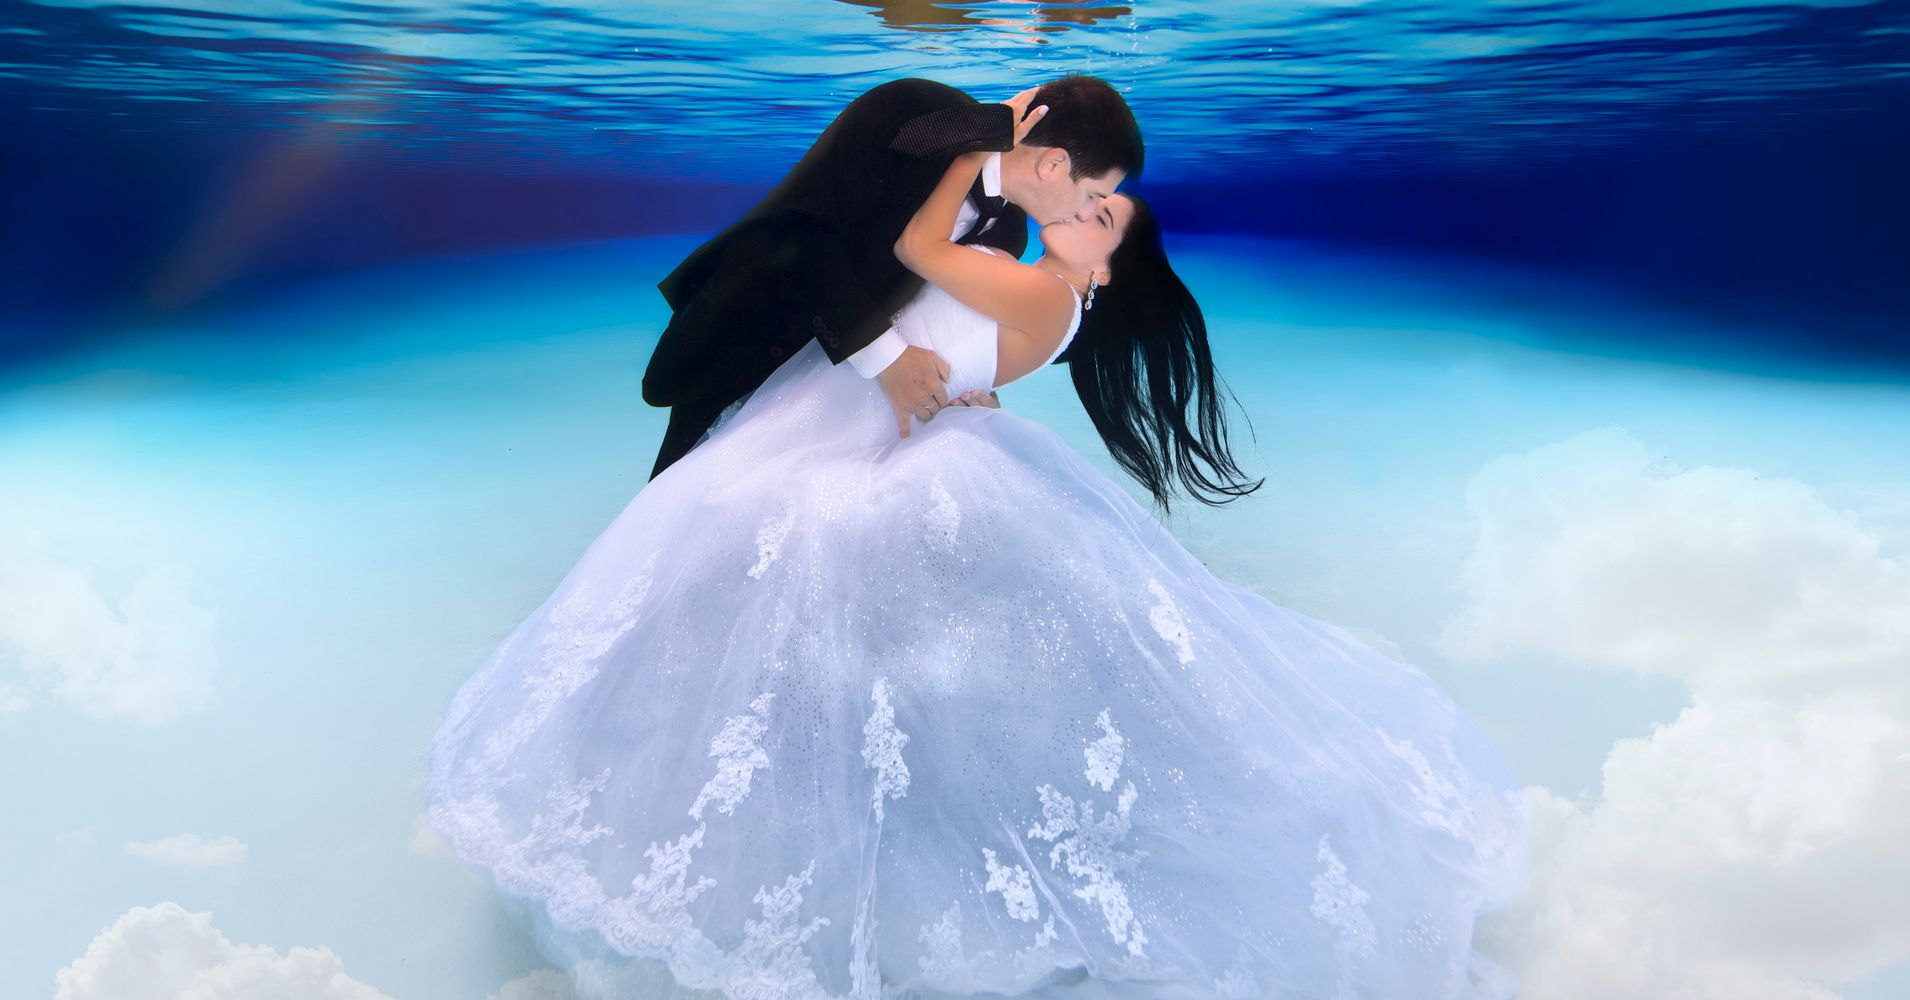 These Underwater Wedding Pics Are What Mermaid Dreams Are